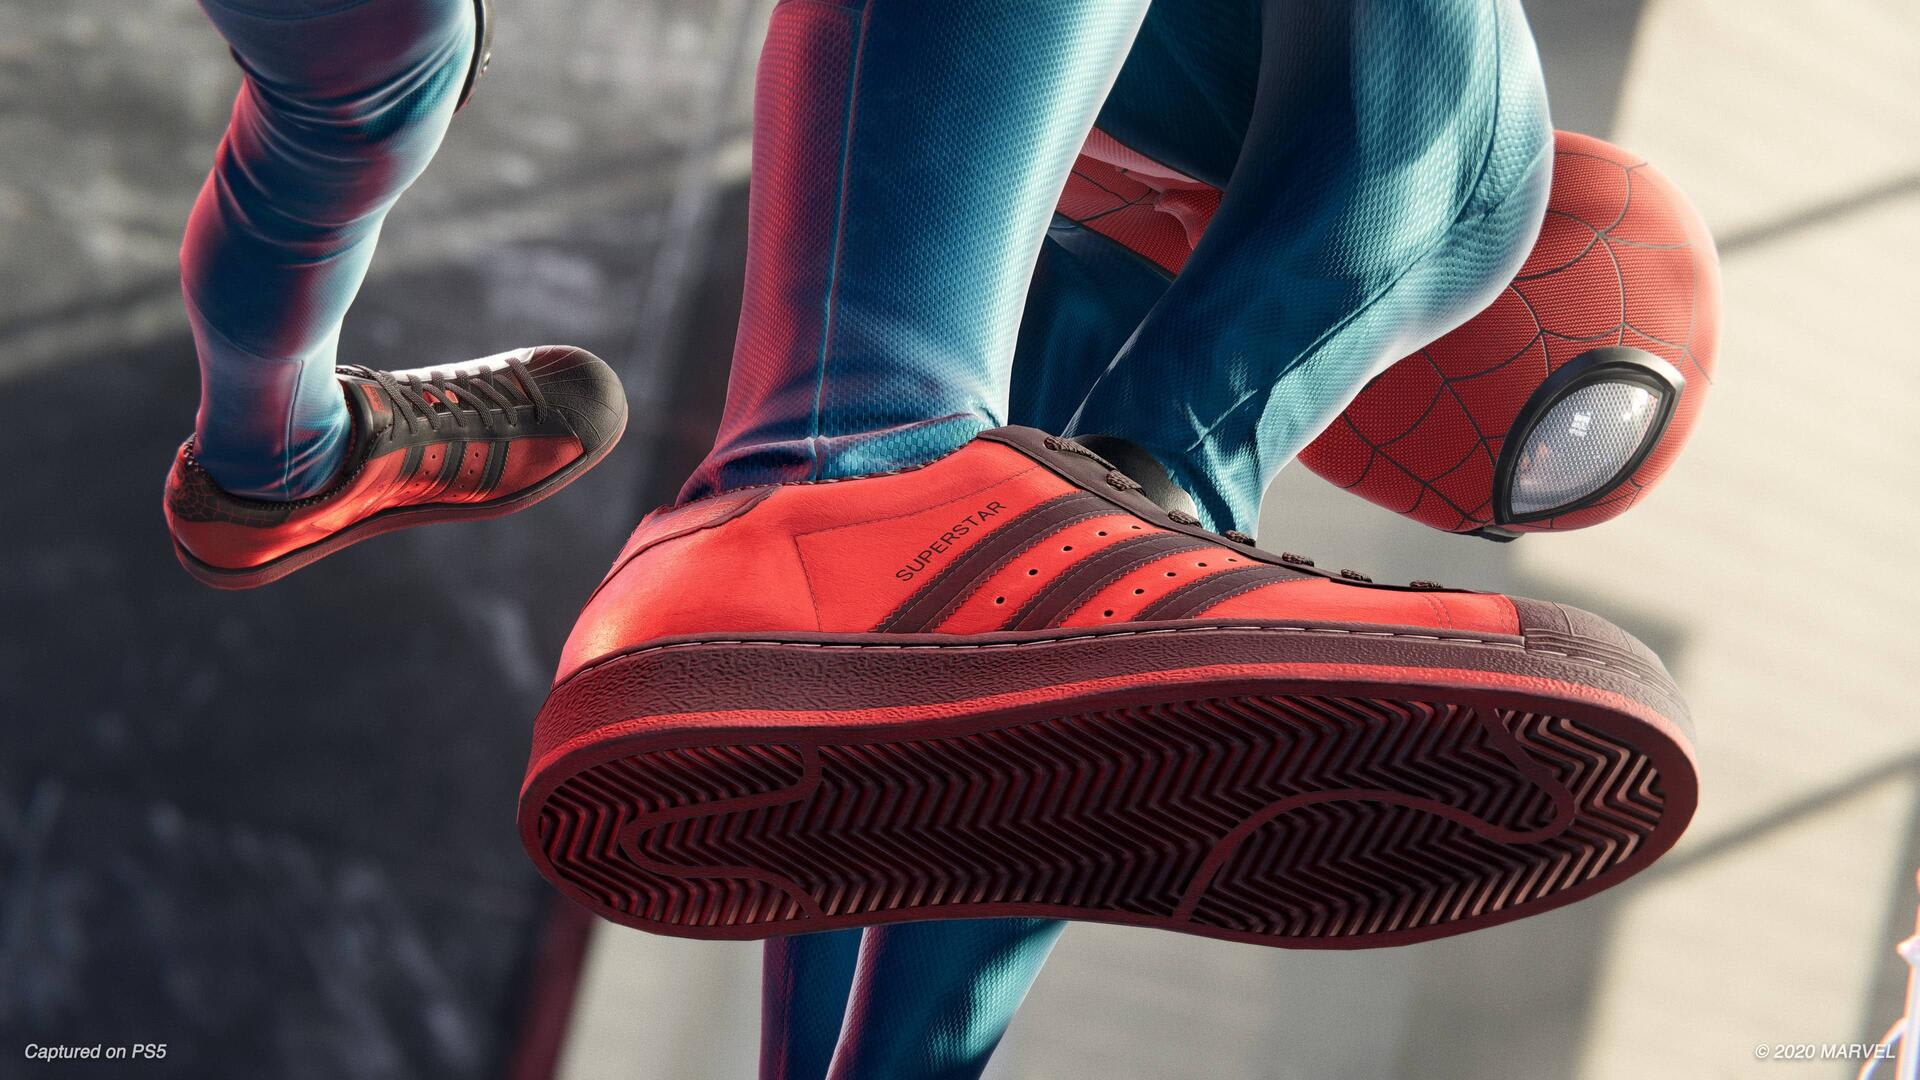 Marvel's Miles Morales x Adidas Superstar Low